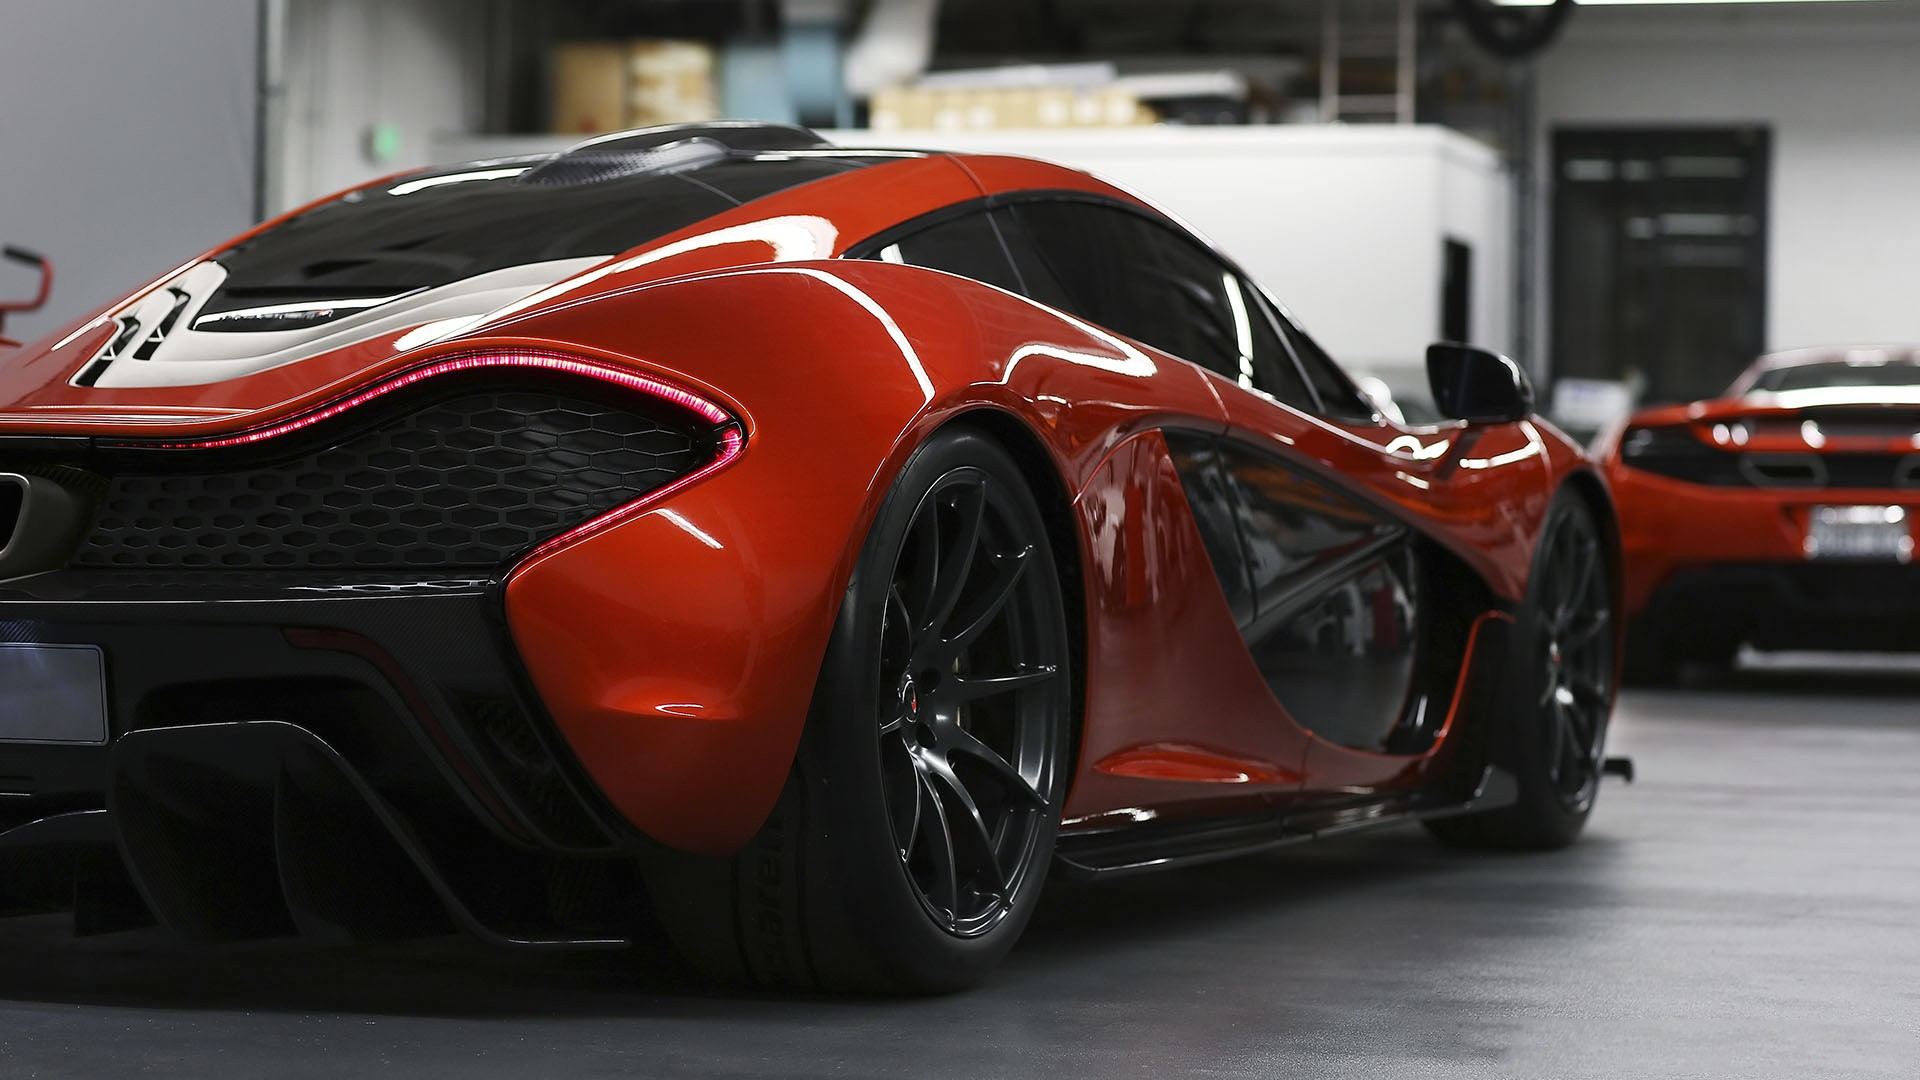 Fast And Furious Cars Wallpaper Iphone Mclaren P1 Wallpapers Full Hd Pictures